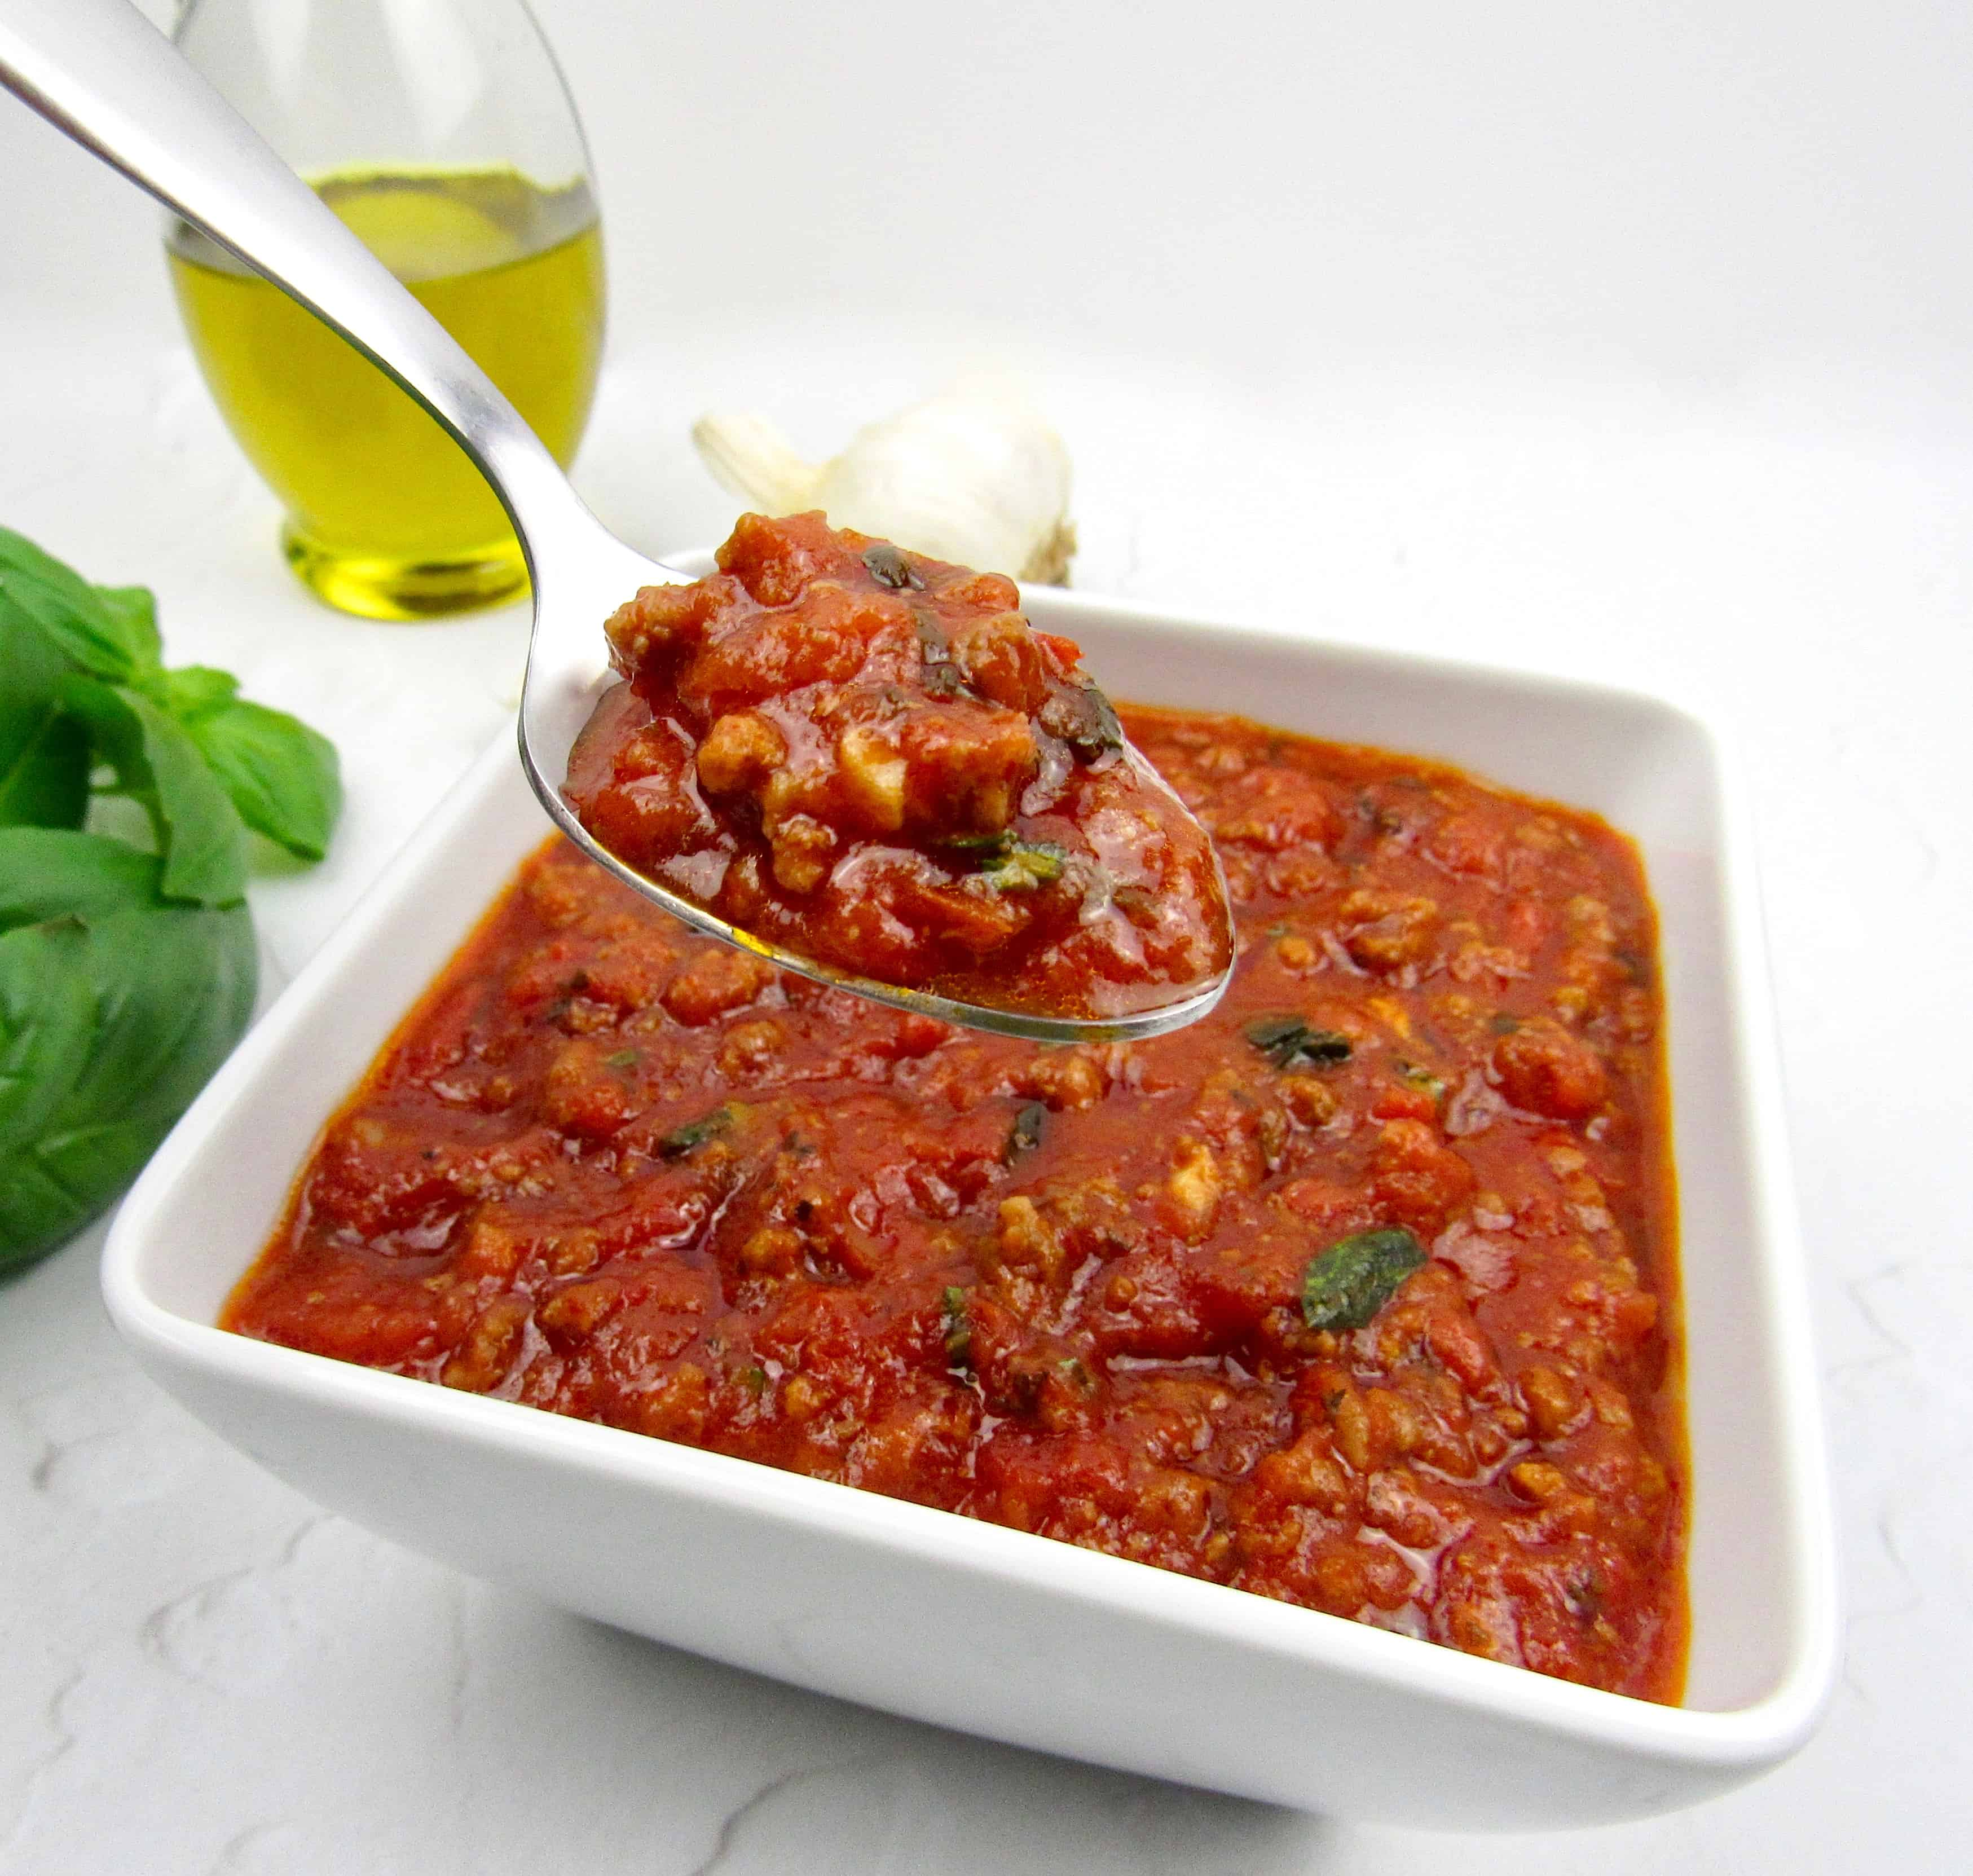 bowl with Italian meat sauce with spoon holding up some